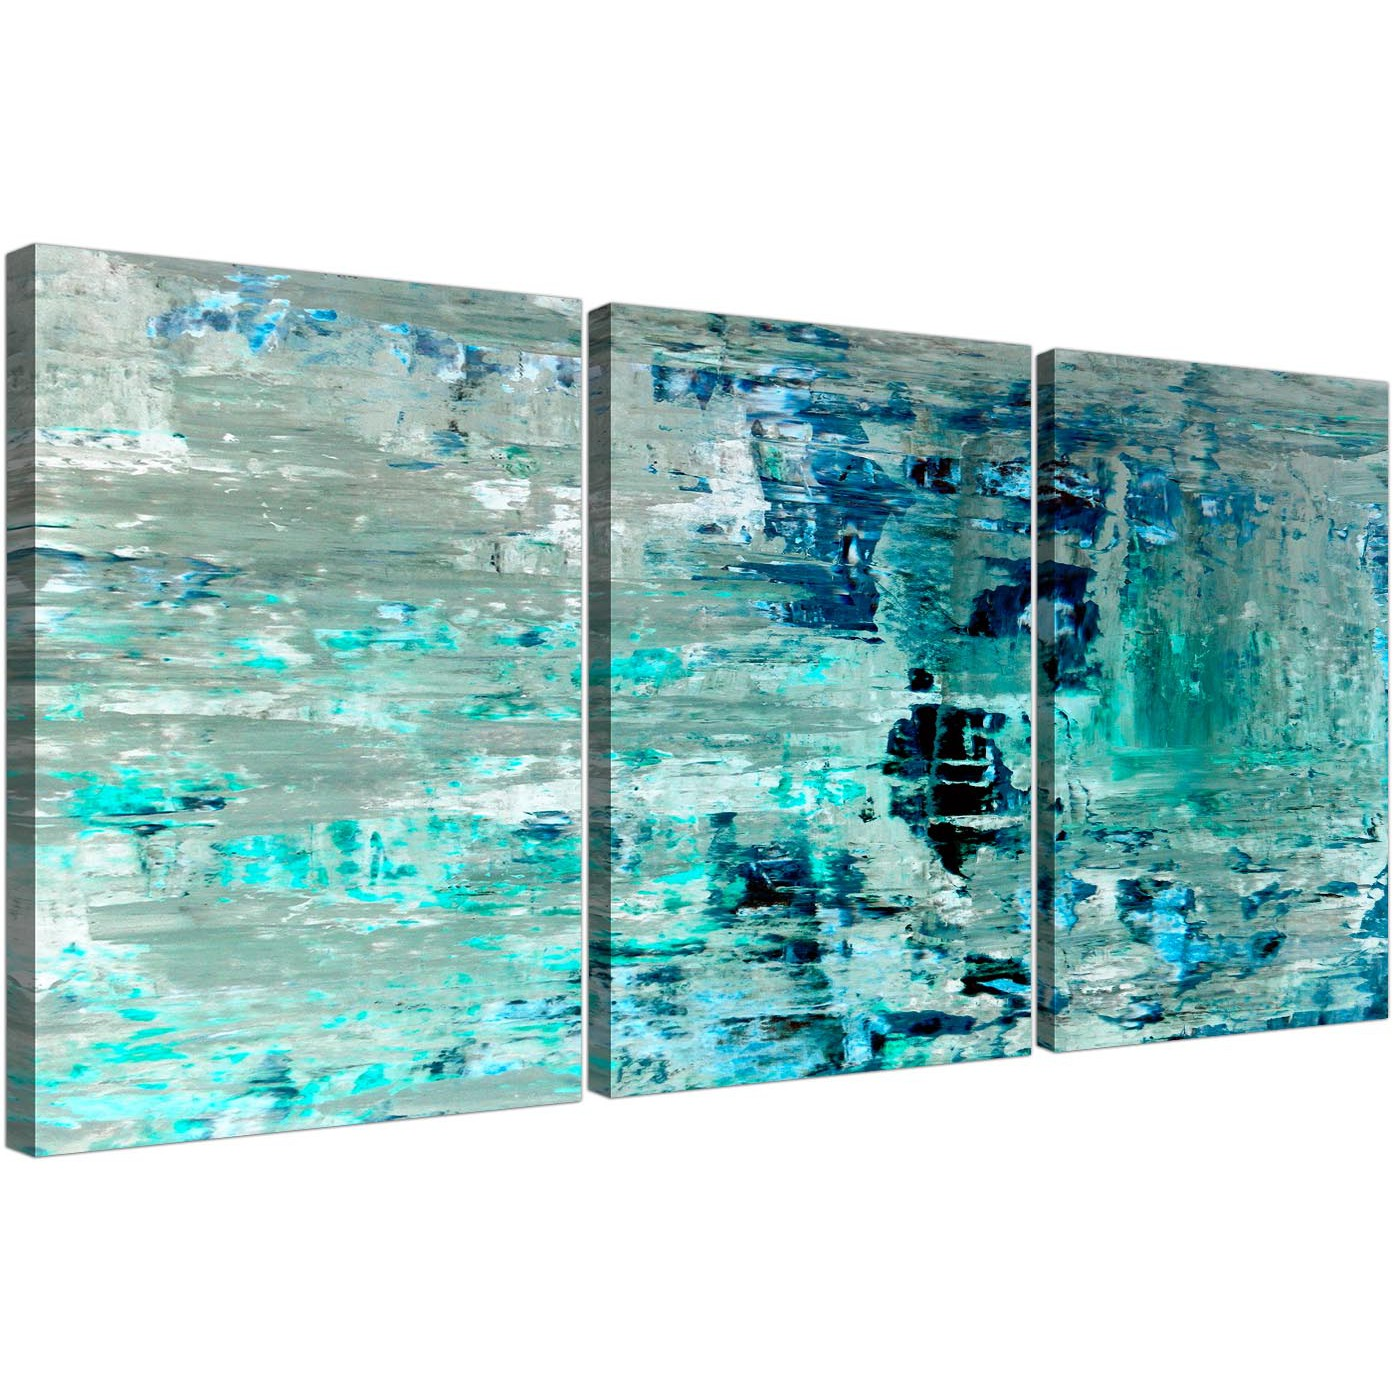 Ordinaire Oversized Turquoise Teal Abstract Painting Wall Art Print Canvas Split 3  Panel 3333 For Your Bedroom Display Gallery Item 1 ...